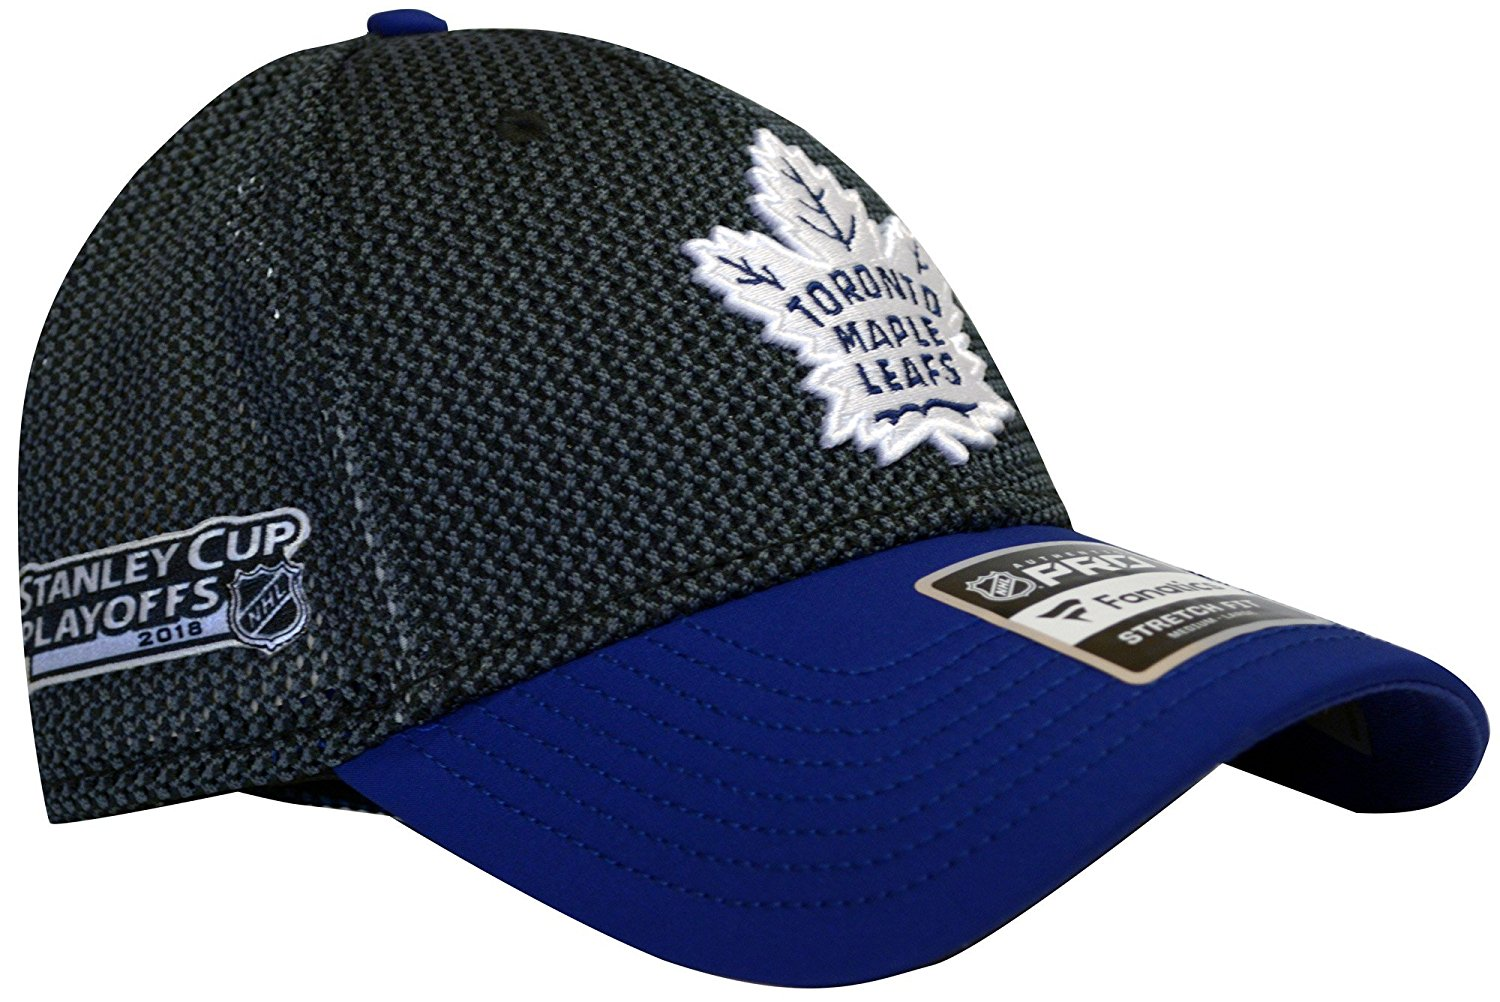 Fanatics Toronto Maple Leafs Pro NHL 2018 Stanley Cup Playoffs Flex Hat Cap